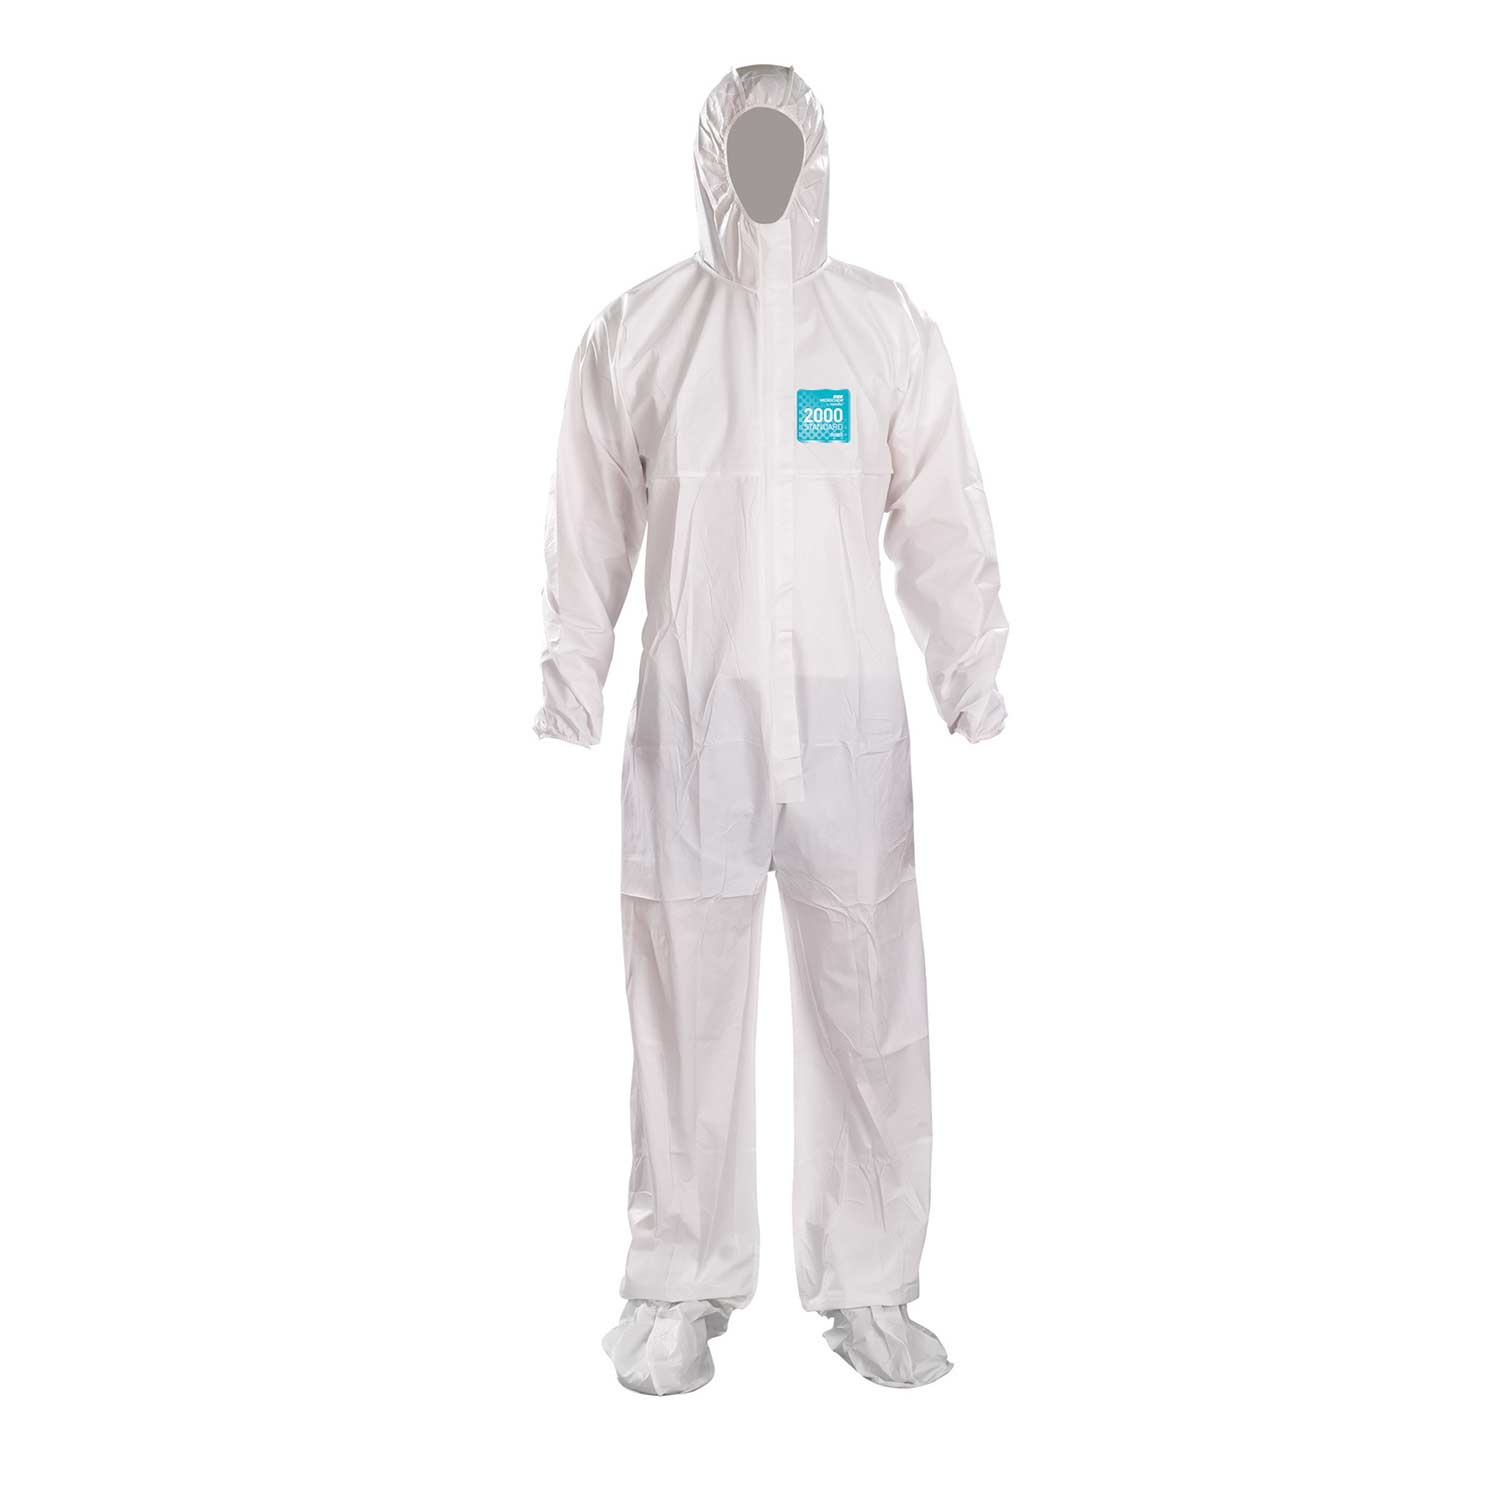 MICROCHEM by AlphaTec 2000 Coveralls (Case of 25)